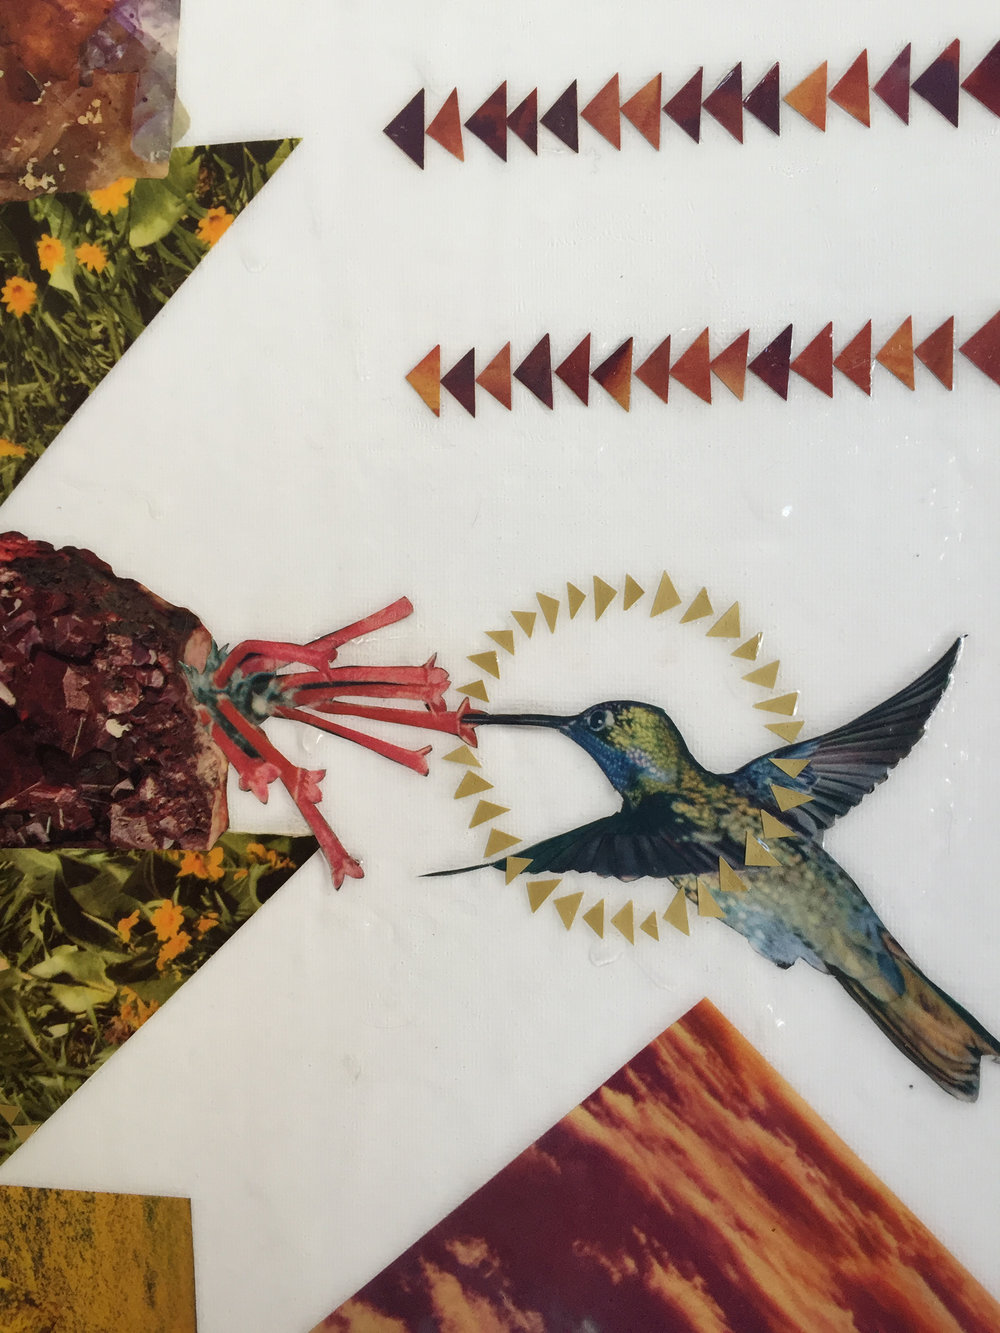 hummingbird_detail.JPG